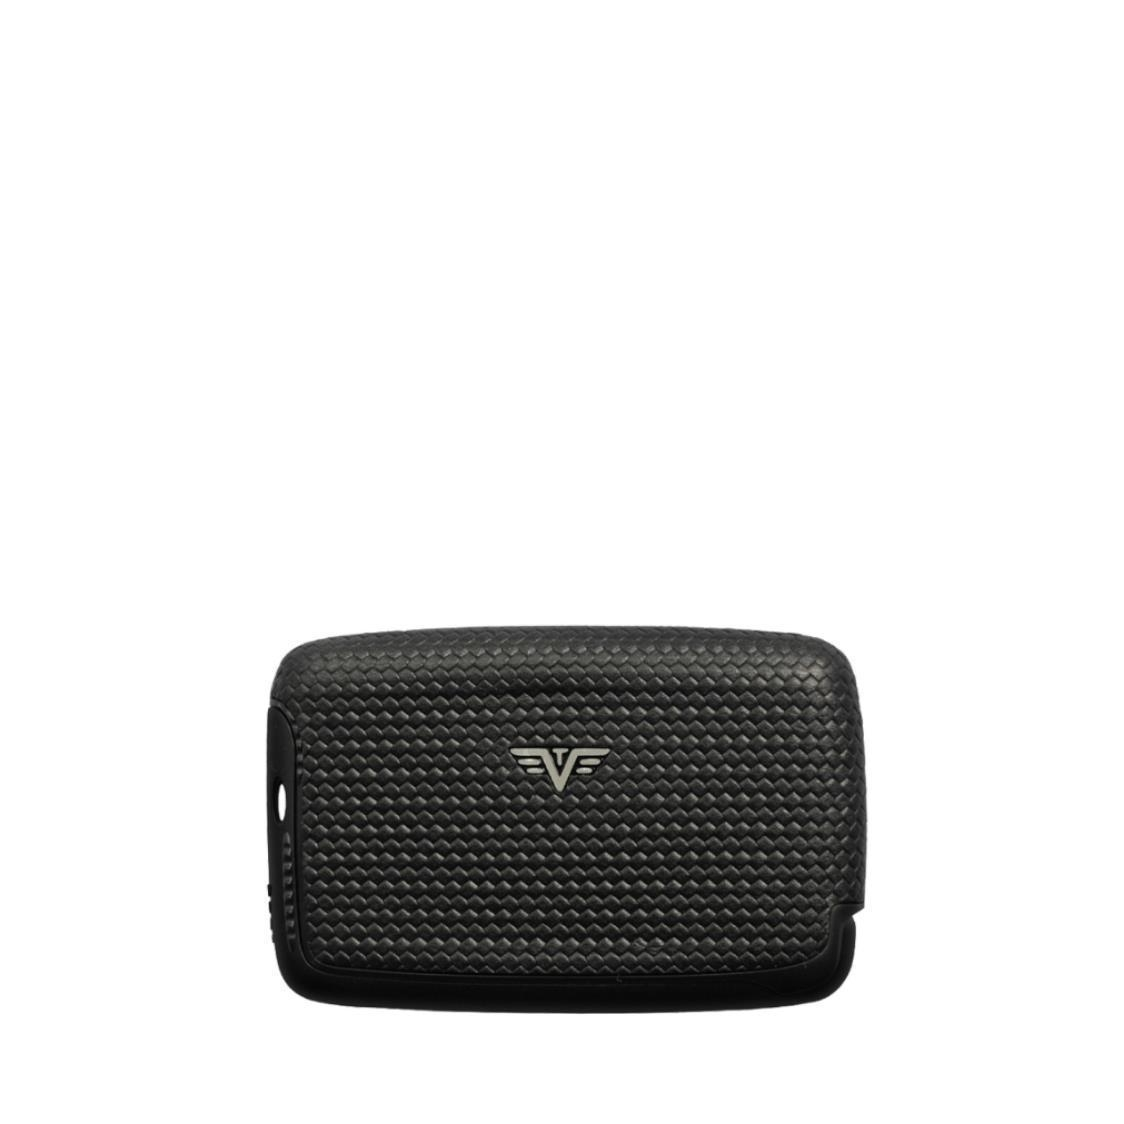 Card Case Nappa Diagonal Carbon Black Tassel